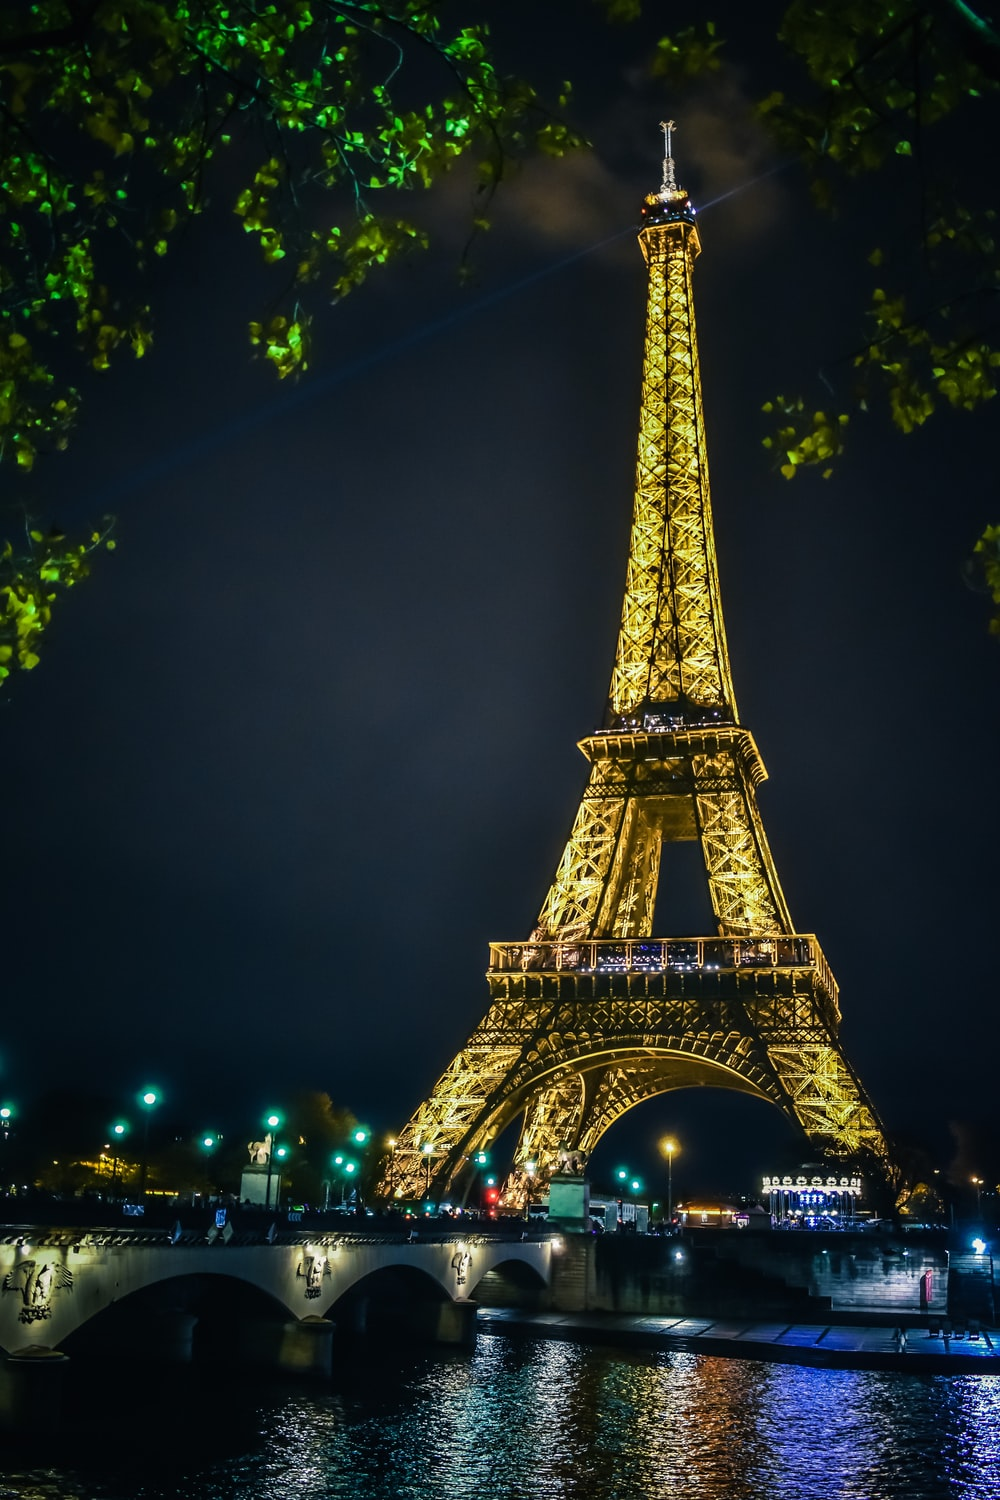 100 Eiffel Tower Images France Hd Download Free Images On Unsplash